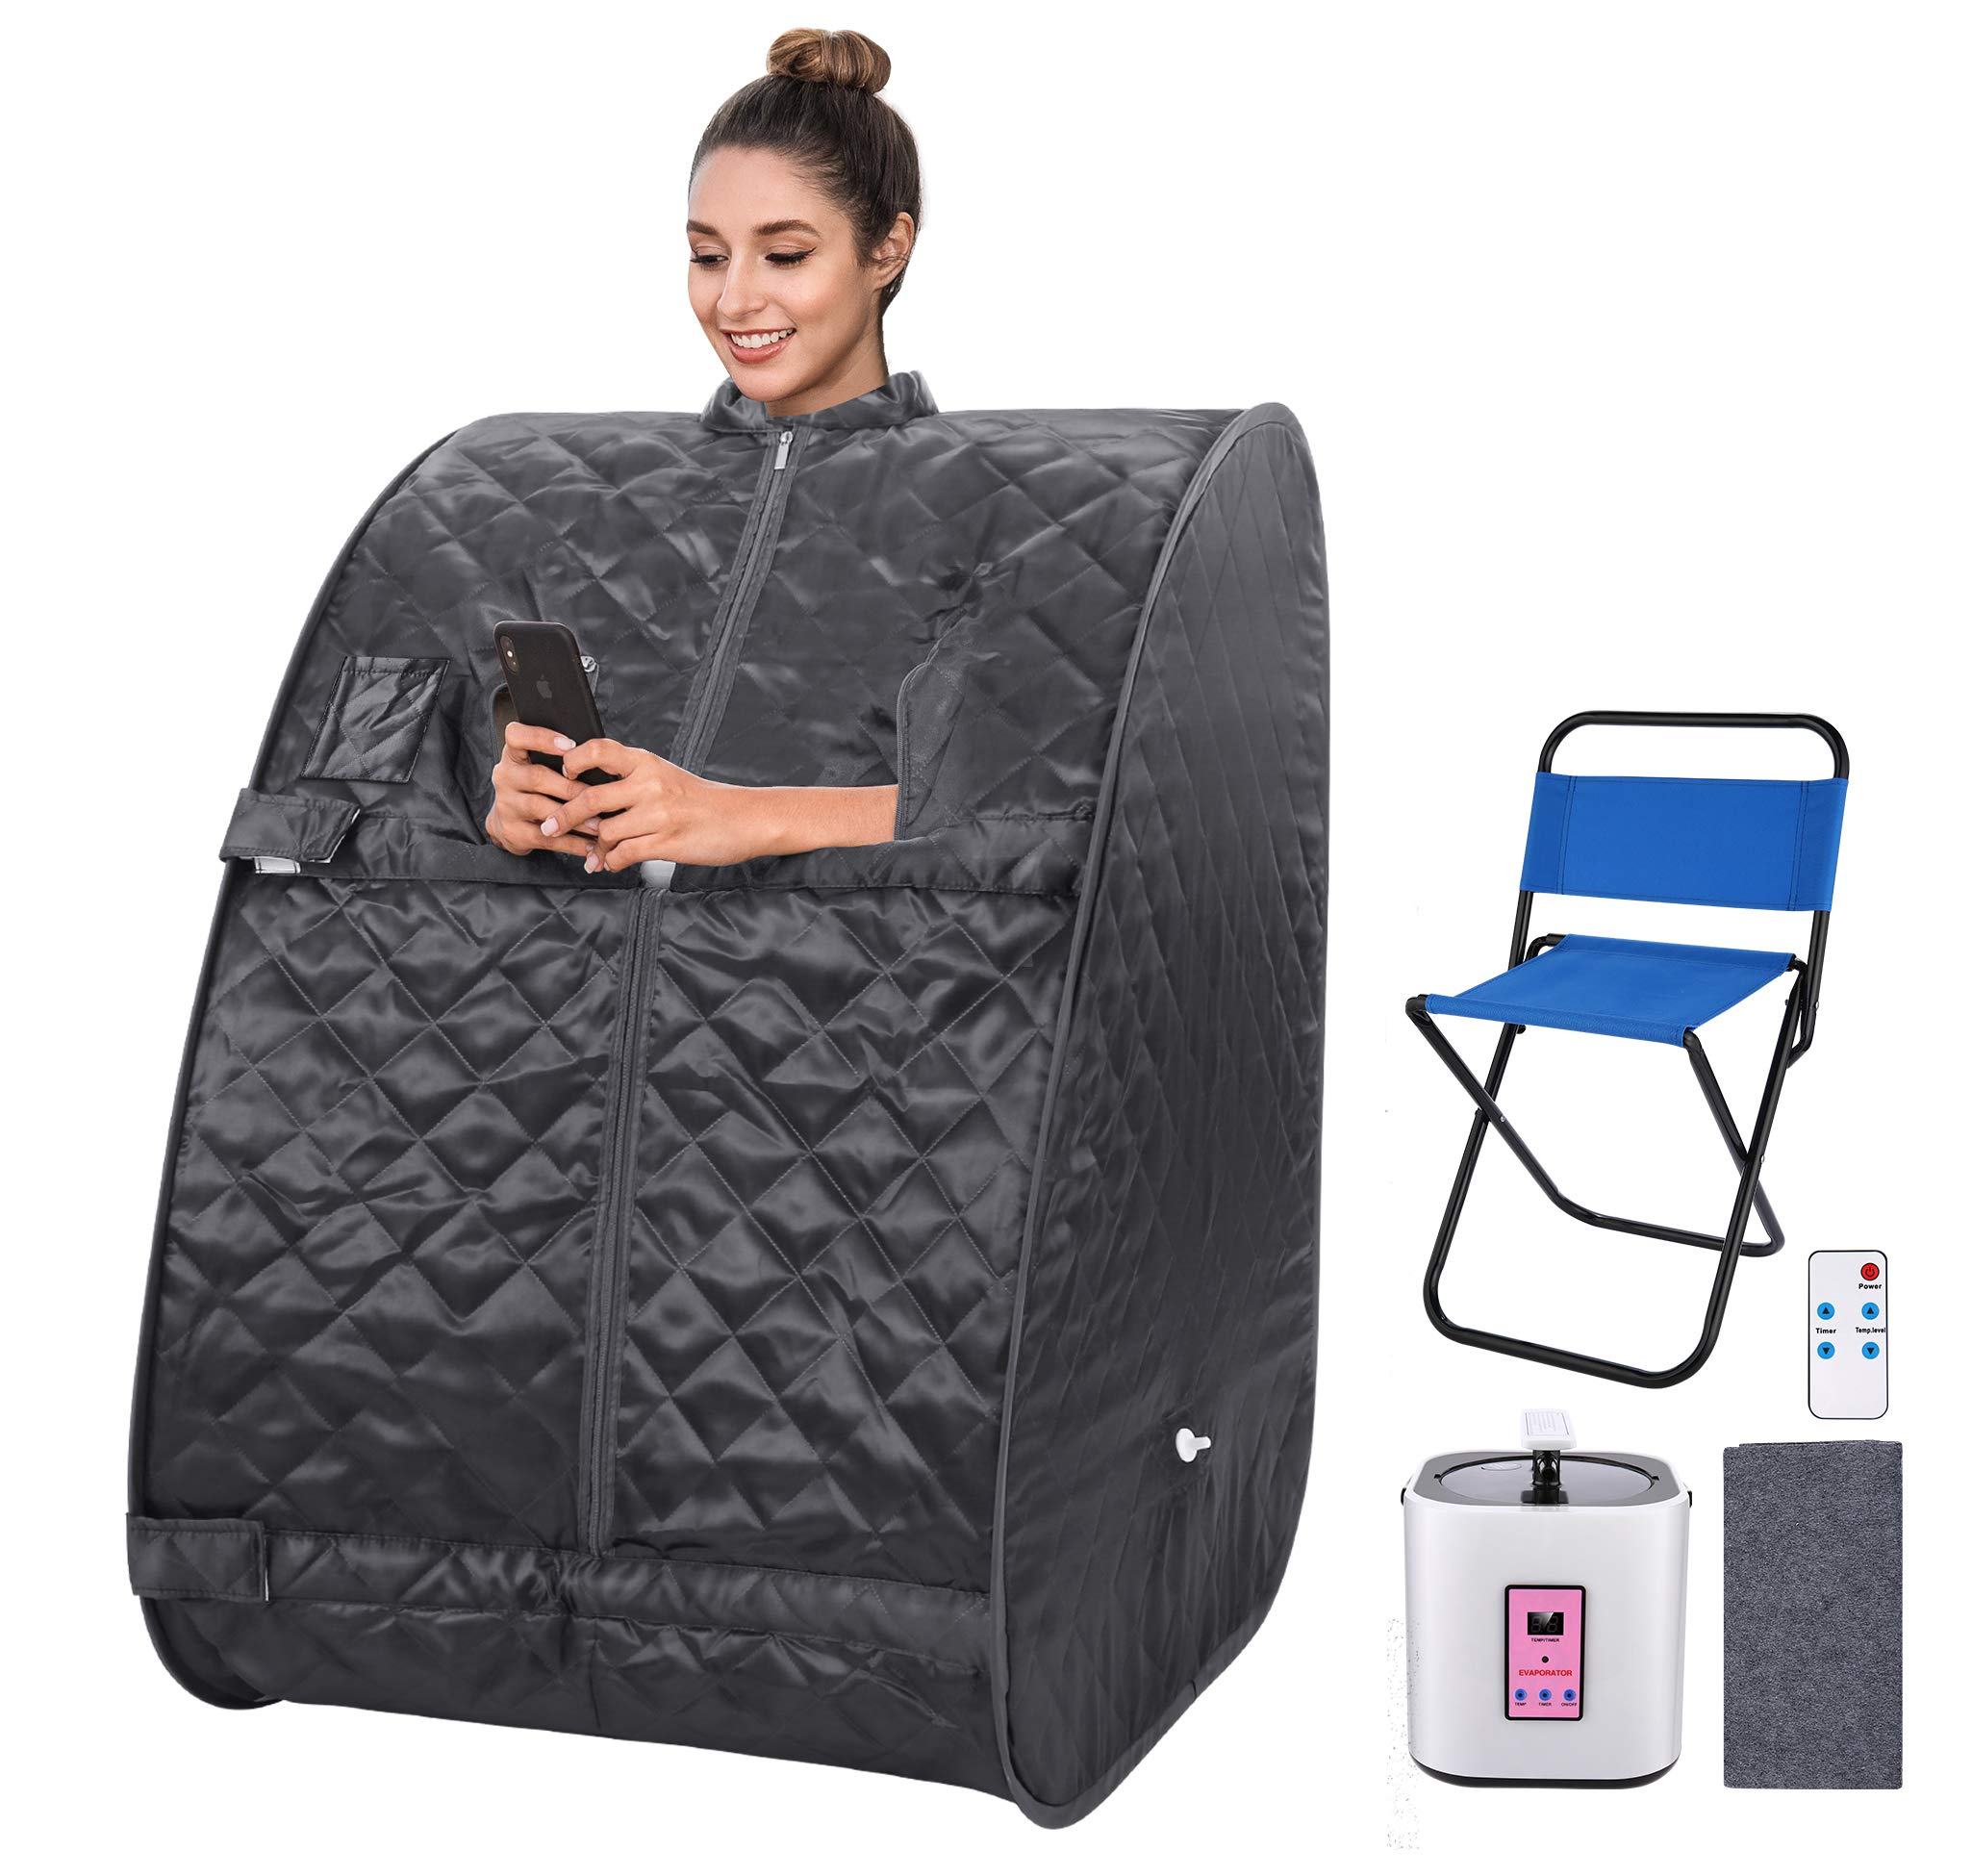 OppsDecor Portable Personal Therapeutic Relaxation